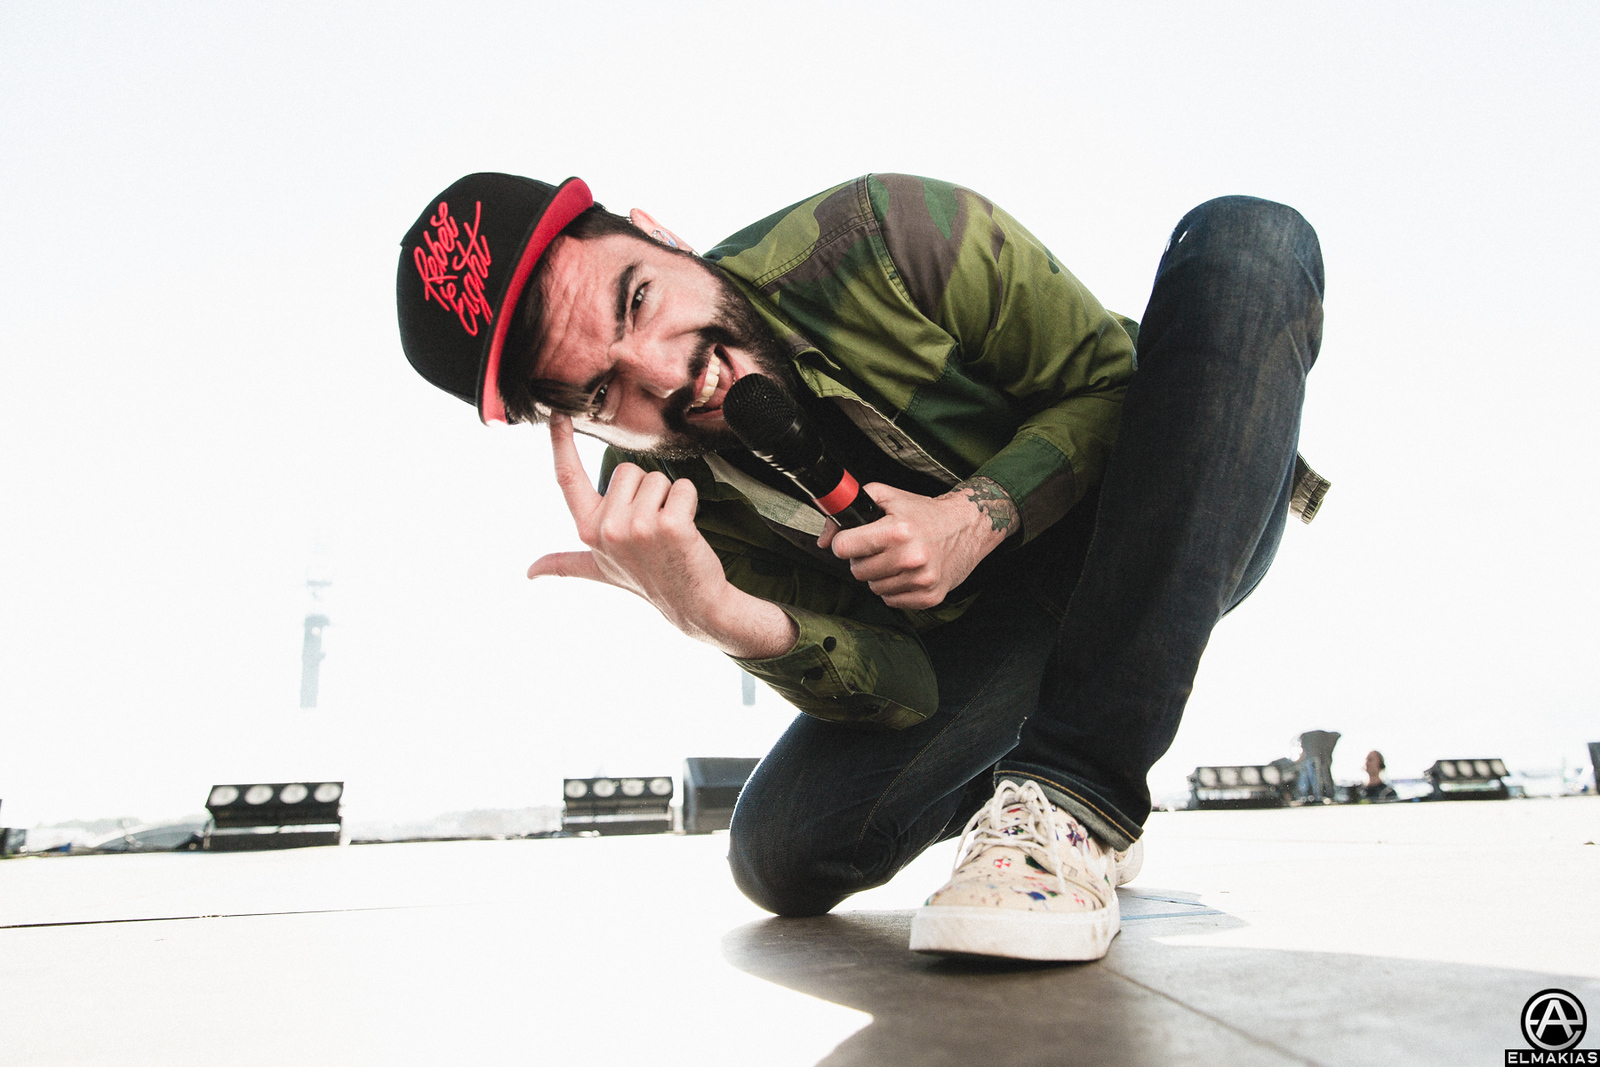 Jeremy McKinnon of A Day To Remember at Bravalla Festival in Norrköping, Sweden